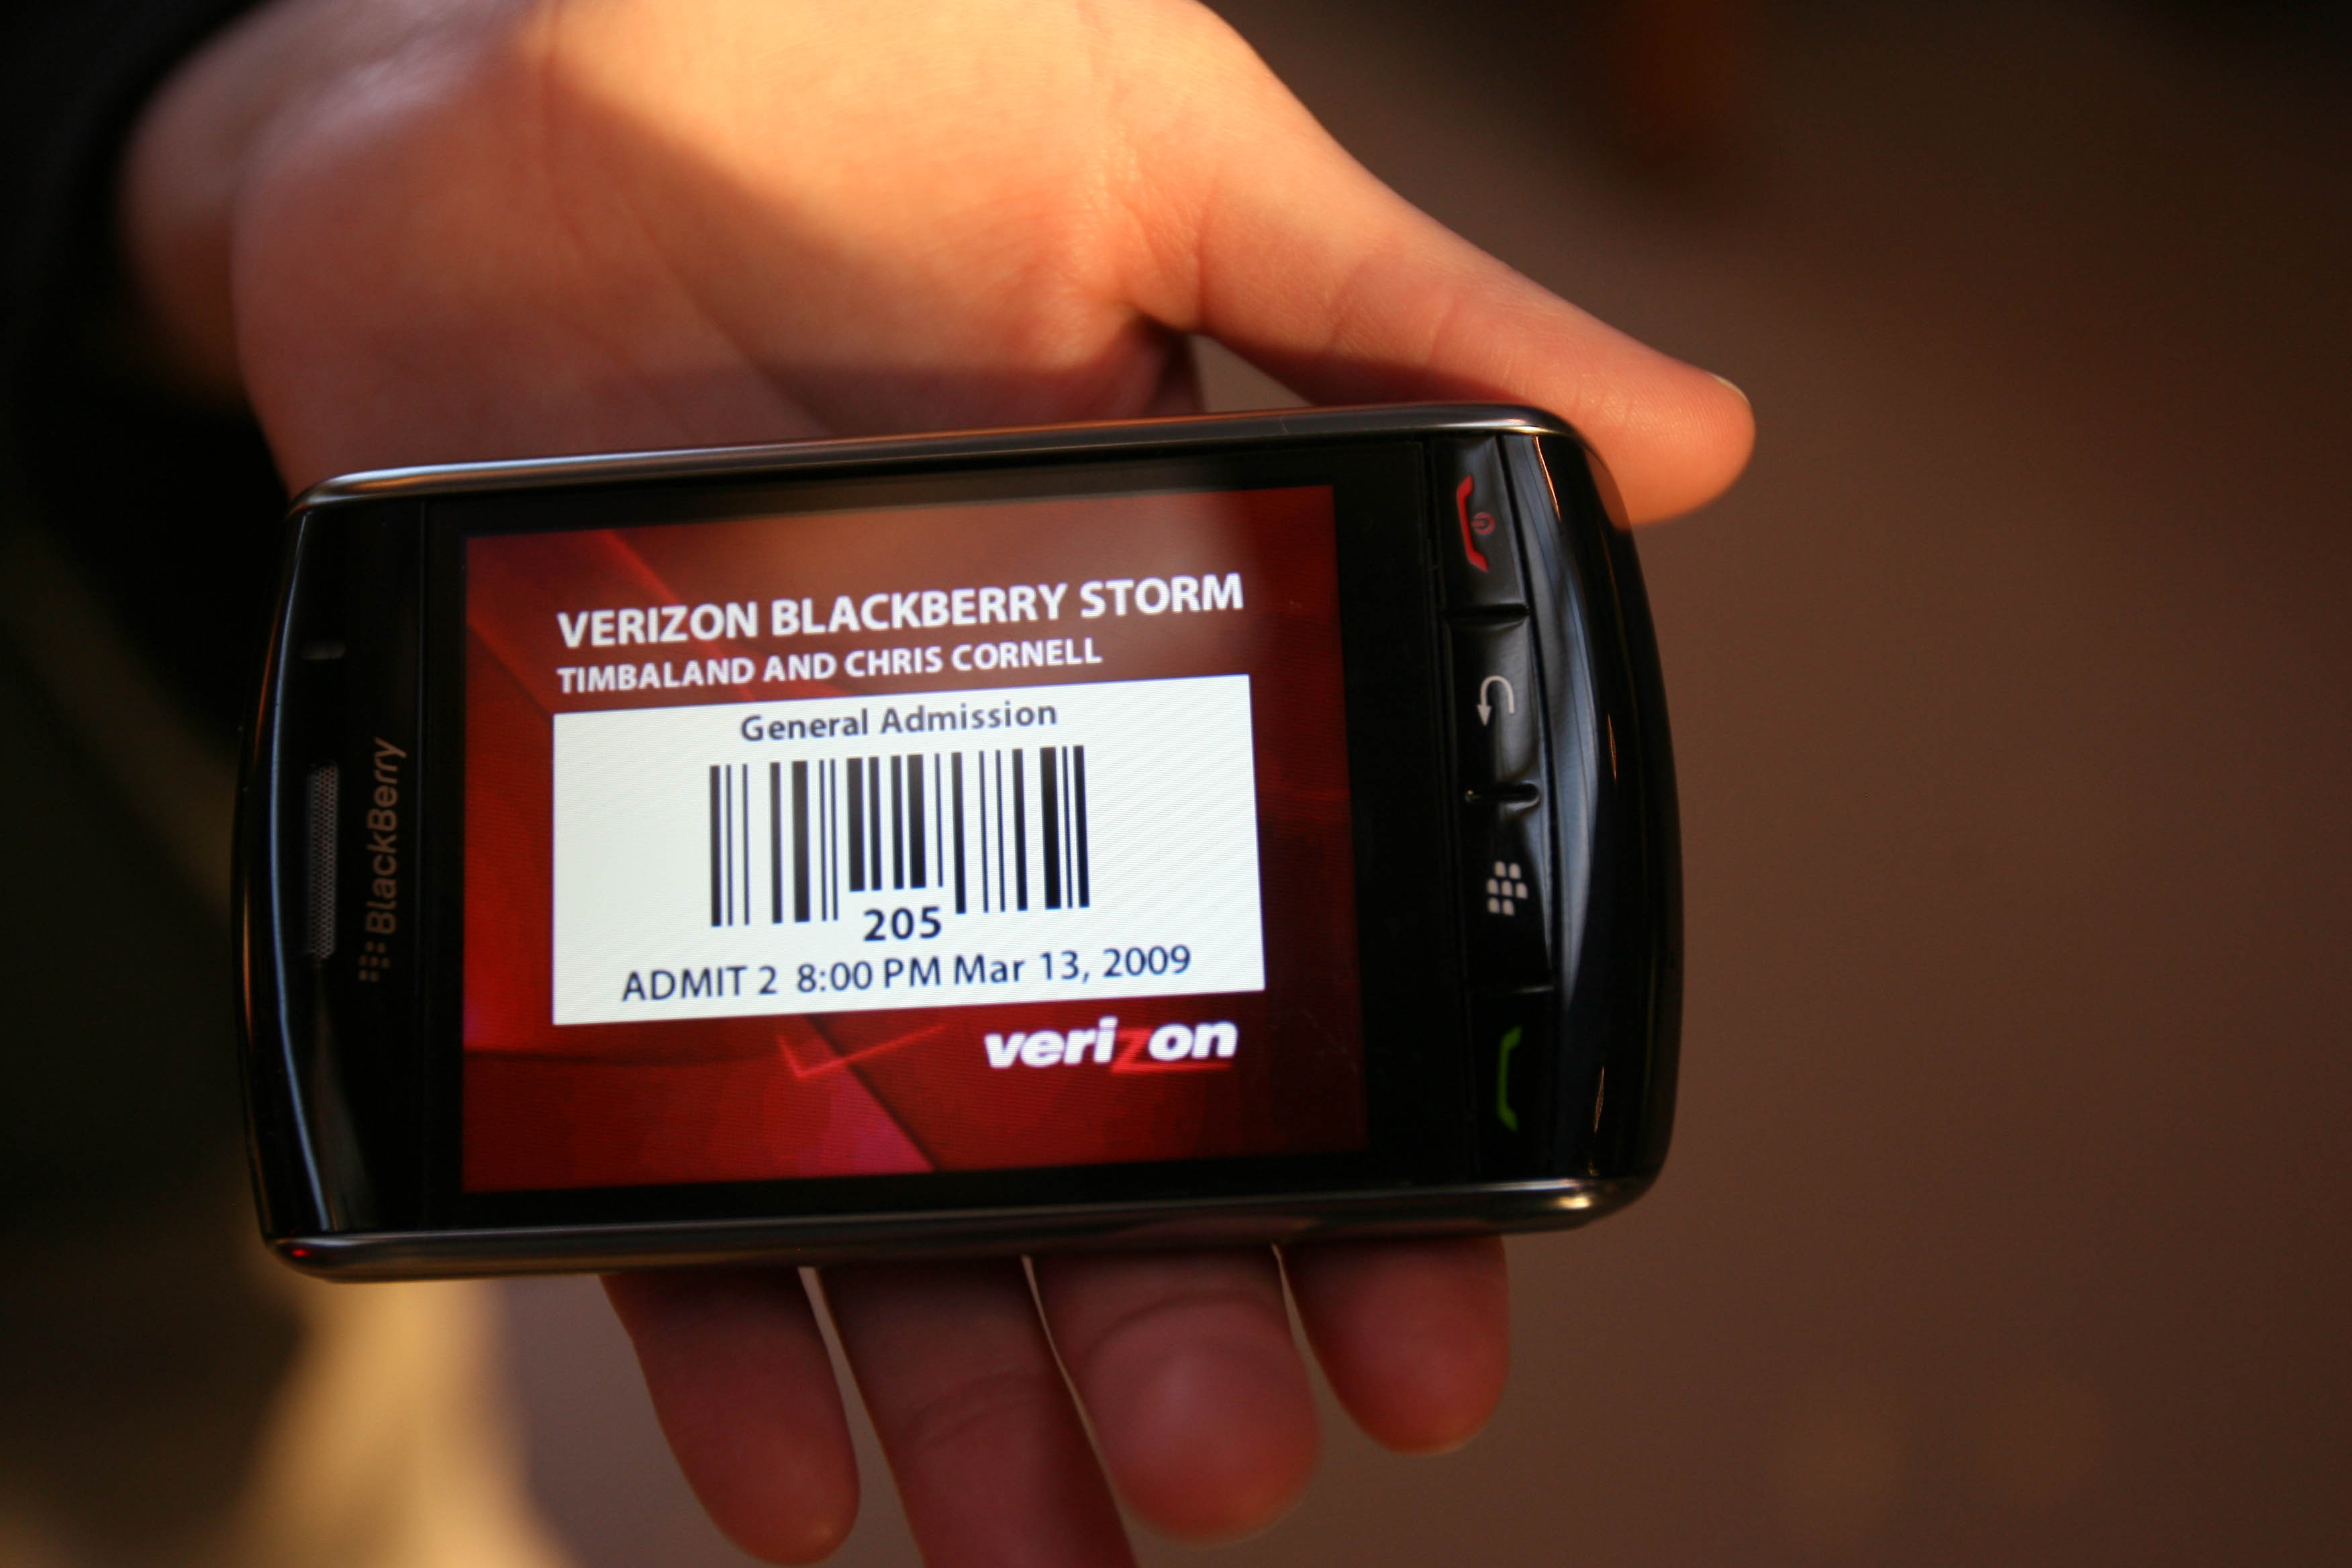 Verizon and BlackBerry  Storm Debut a Collaboration from Chris Cornell & Timbaland